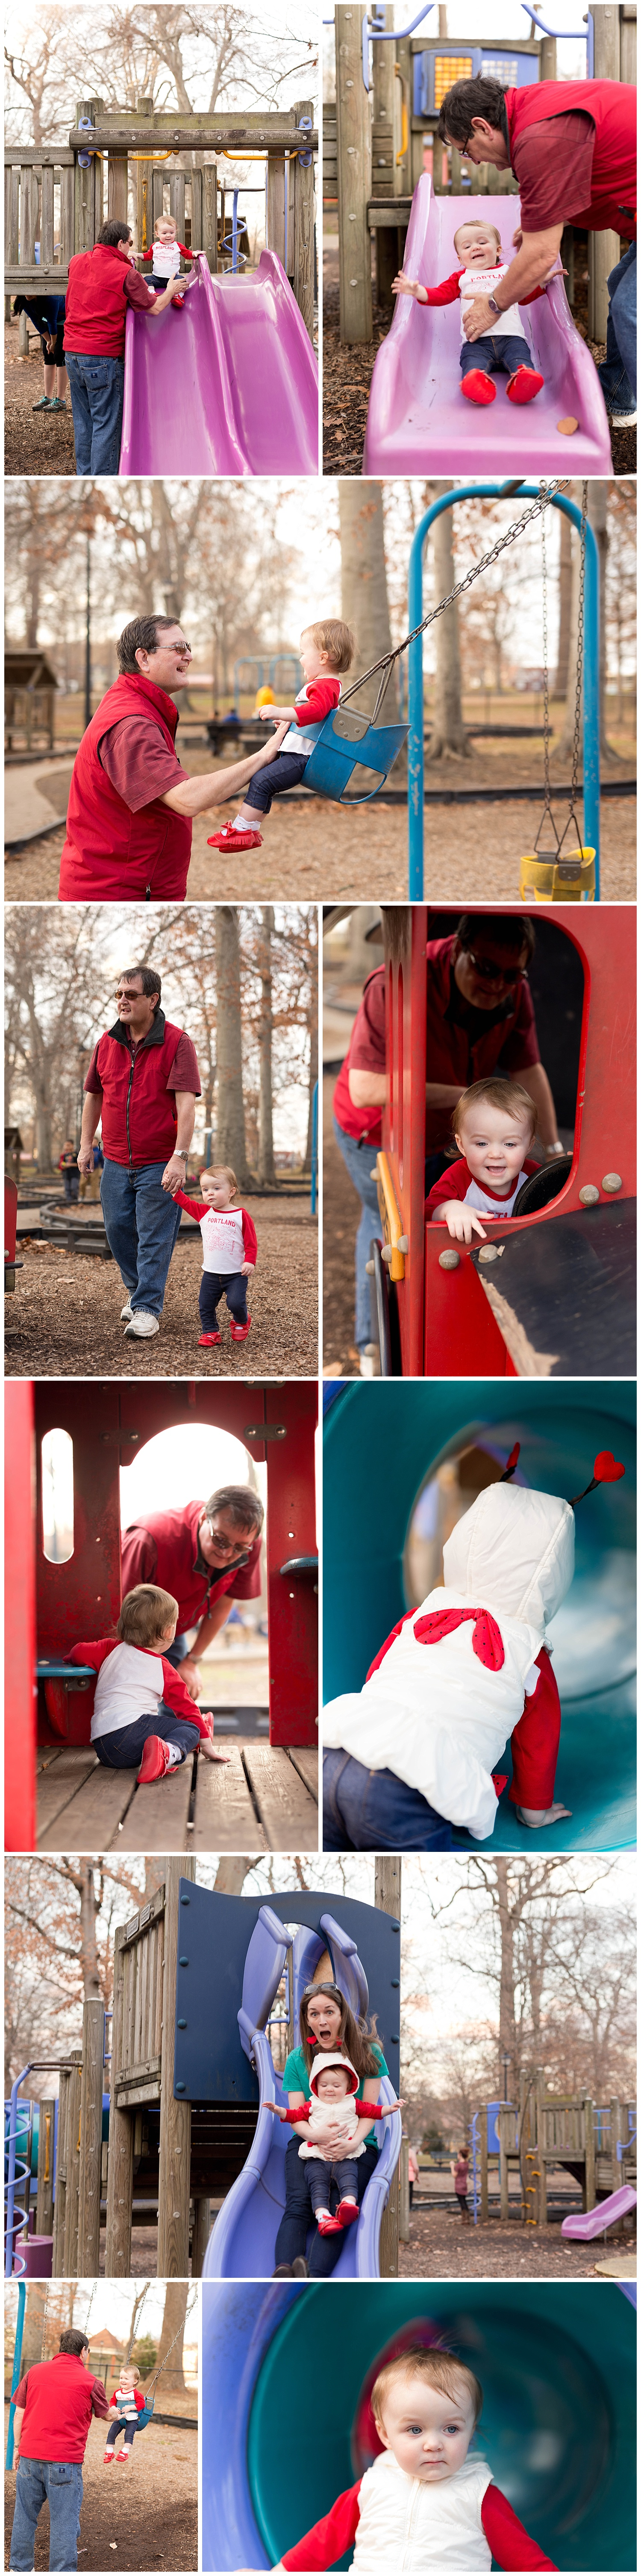 little girl playing at park with mom and grandfather (Central Park, Ashland, Kentucky)